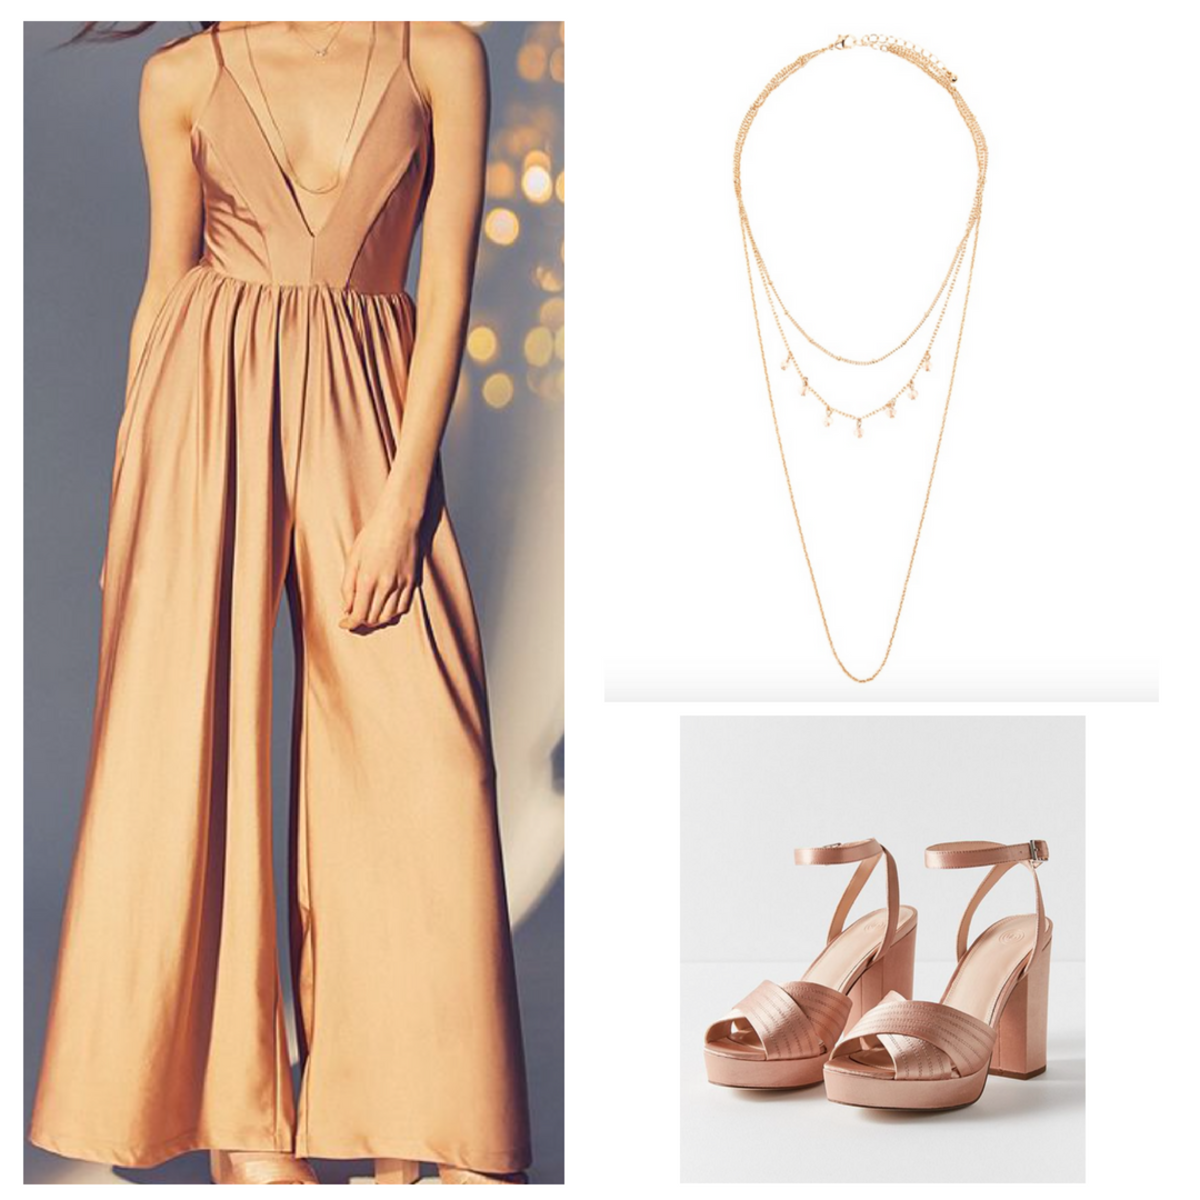 Rose Gold Jumper Rose Gold Shoes And Long Layered Necklace 21stbirthday Fashion Birthday Outfit 21st Birthday Outfits [ 1200 x 1200 Pixel ]